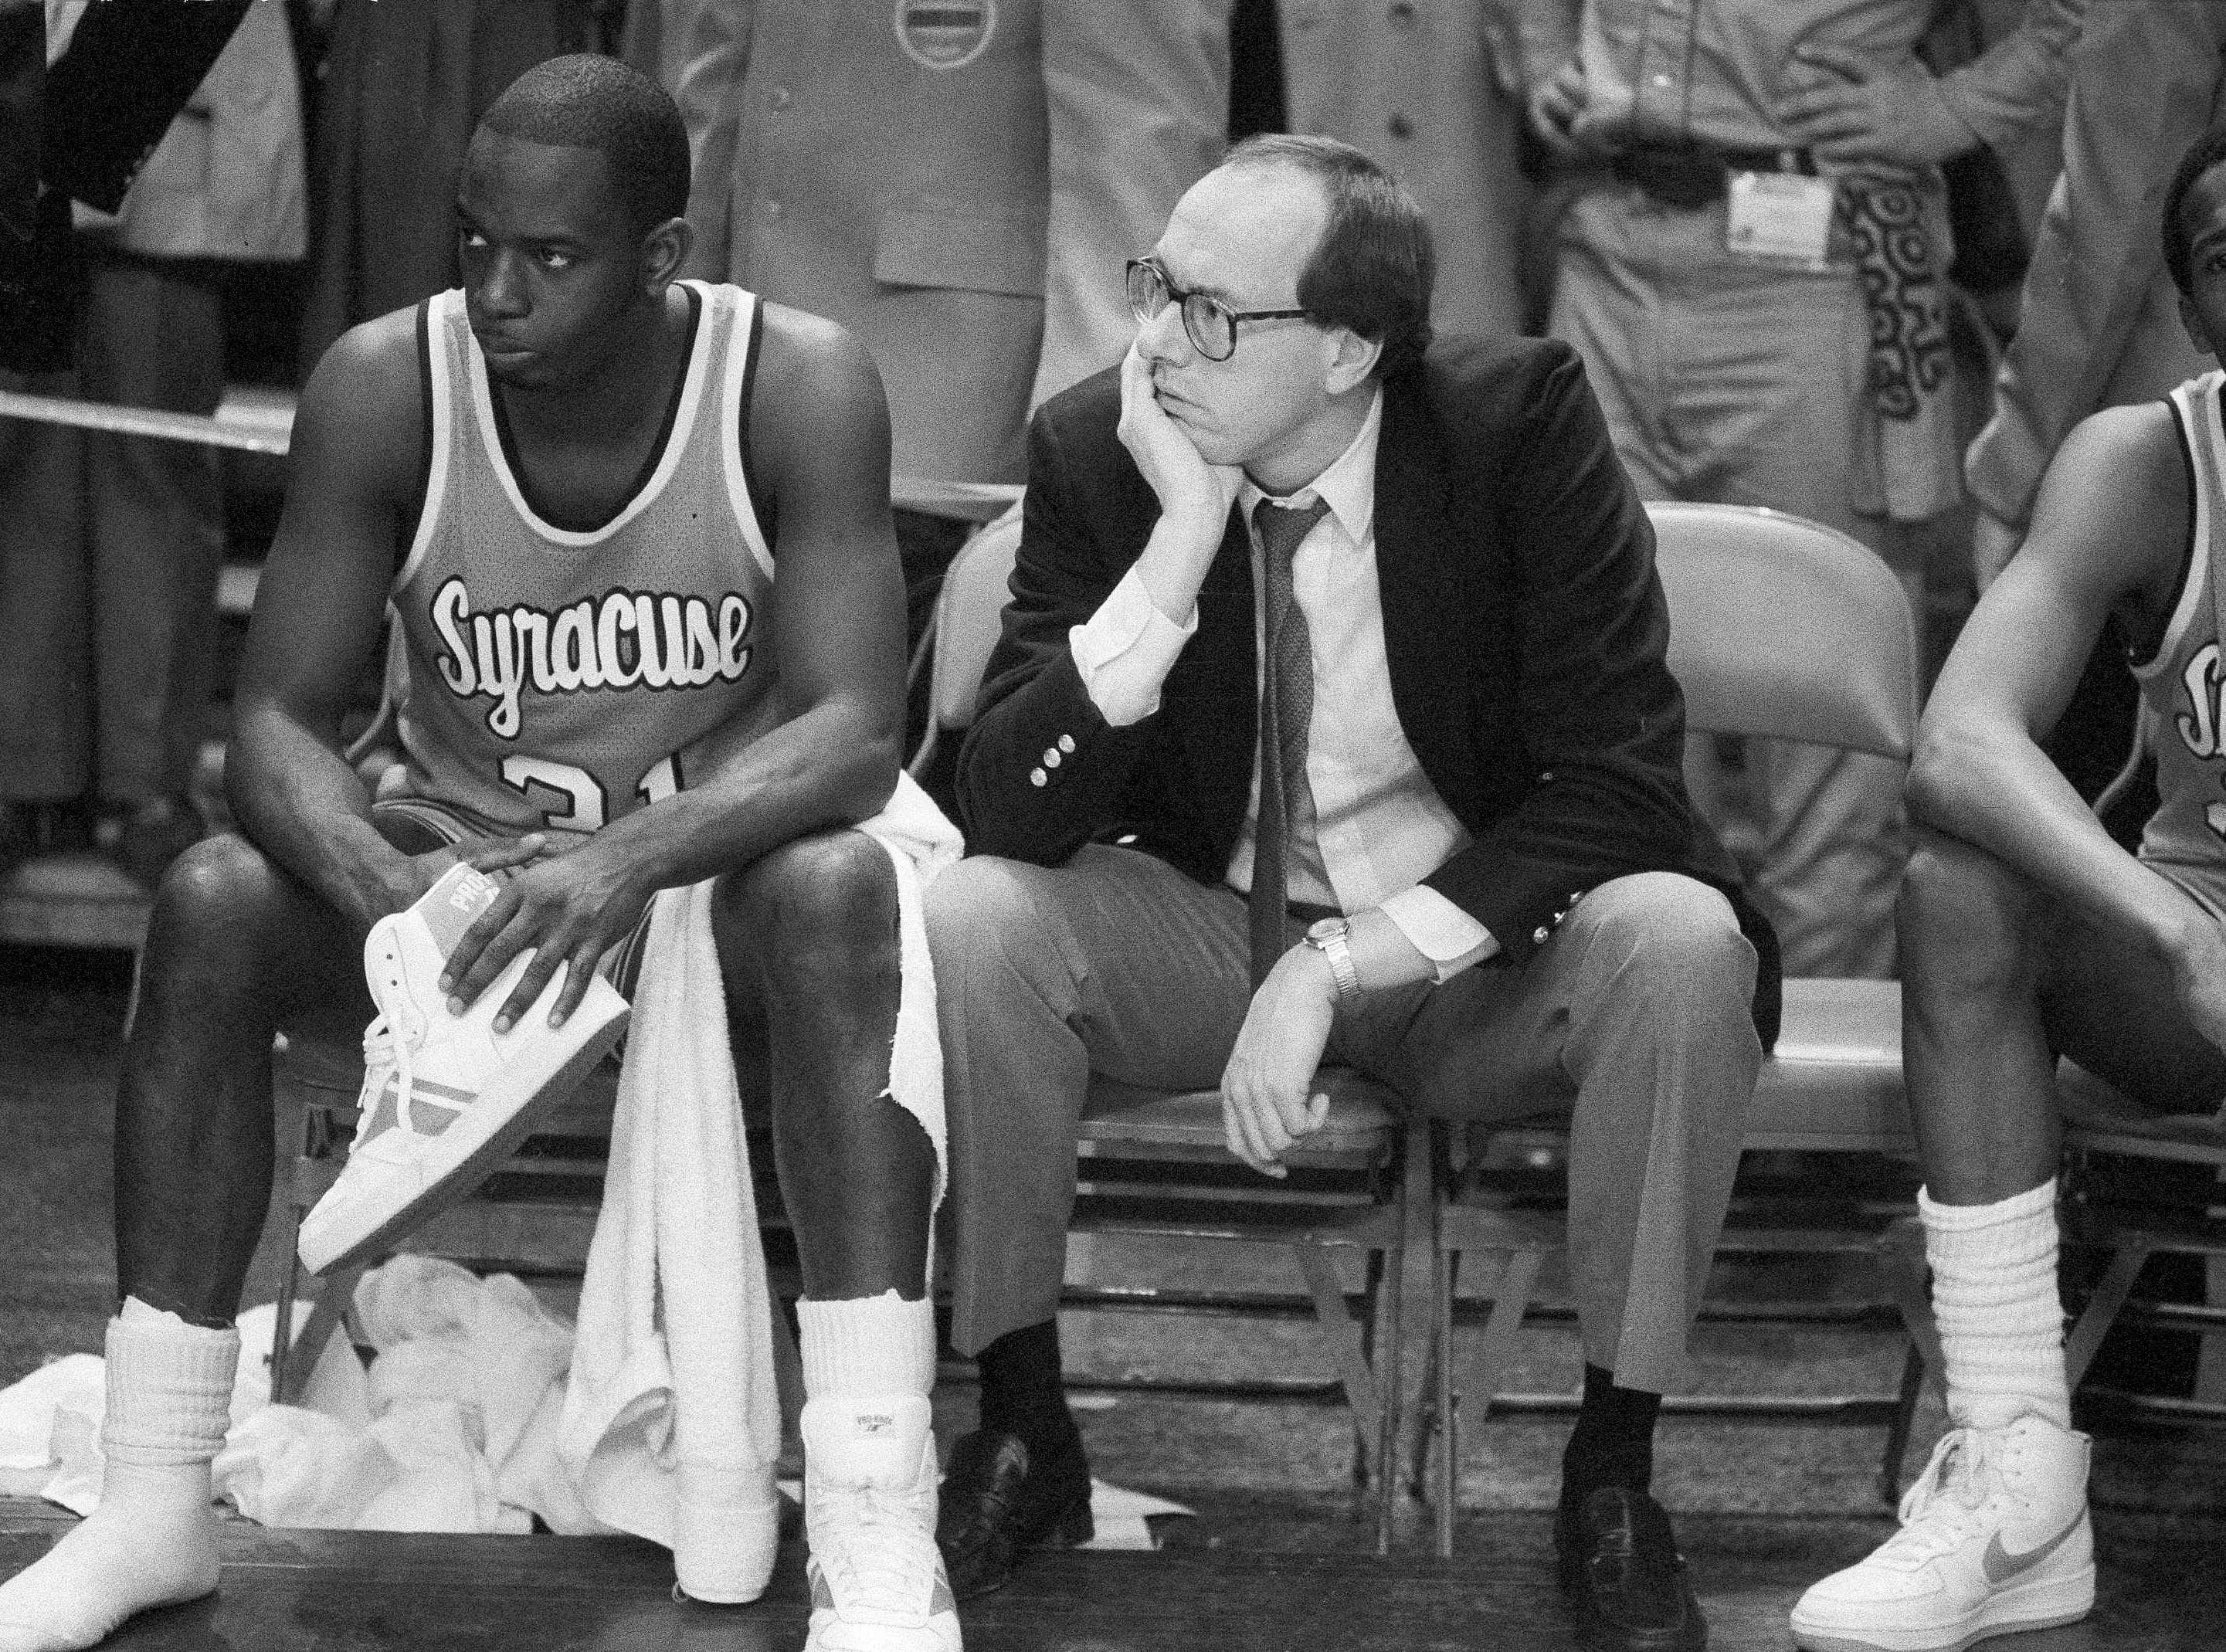 1984: Syracuse coach Jim Boeheim, right, and Syracuse player Dwayne Washington (31) watch as Georgetown University took control in overtime of the Big East Conference championship basketball game at Madison Square Garden in New York. Syracuse coach Jim Boeheim, current and former players, and others associated with the program continue to rally in support of former Orange star Dwayne Pearl Washington, who's afflicted with brain cancer.  (AP Photo/Ray Stubblebine, File)